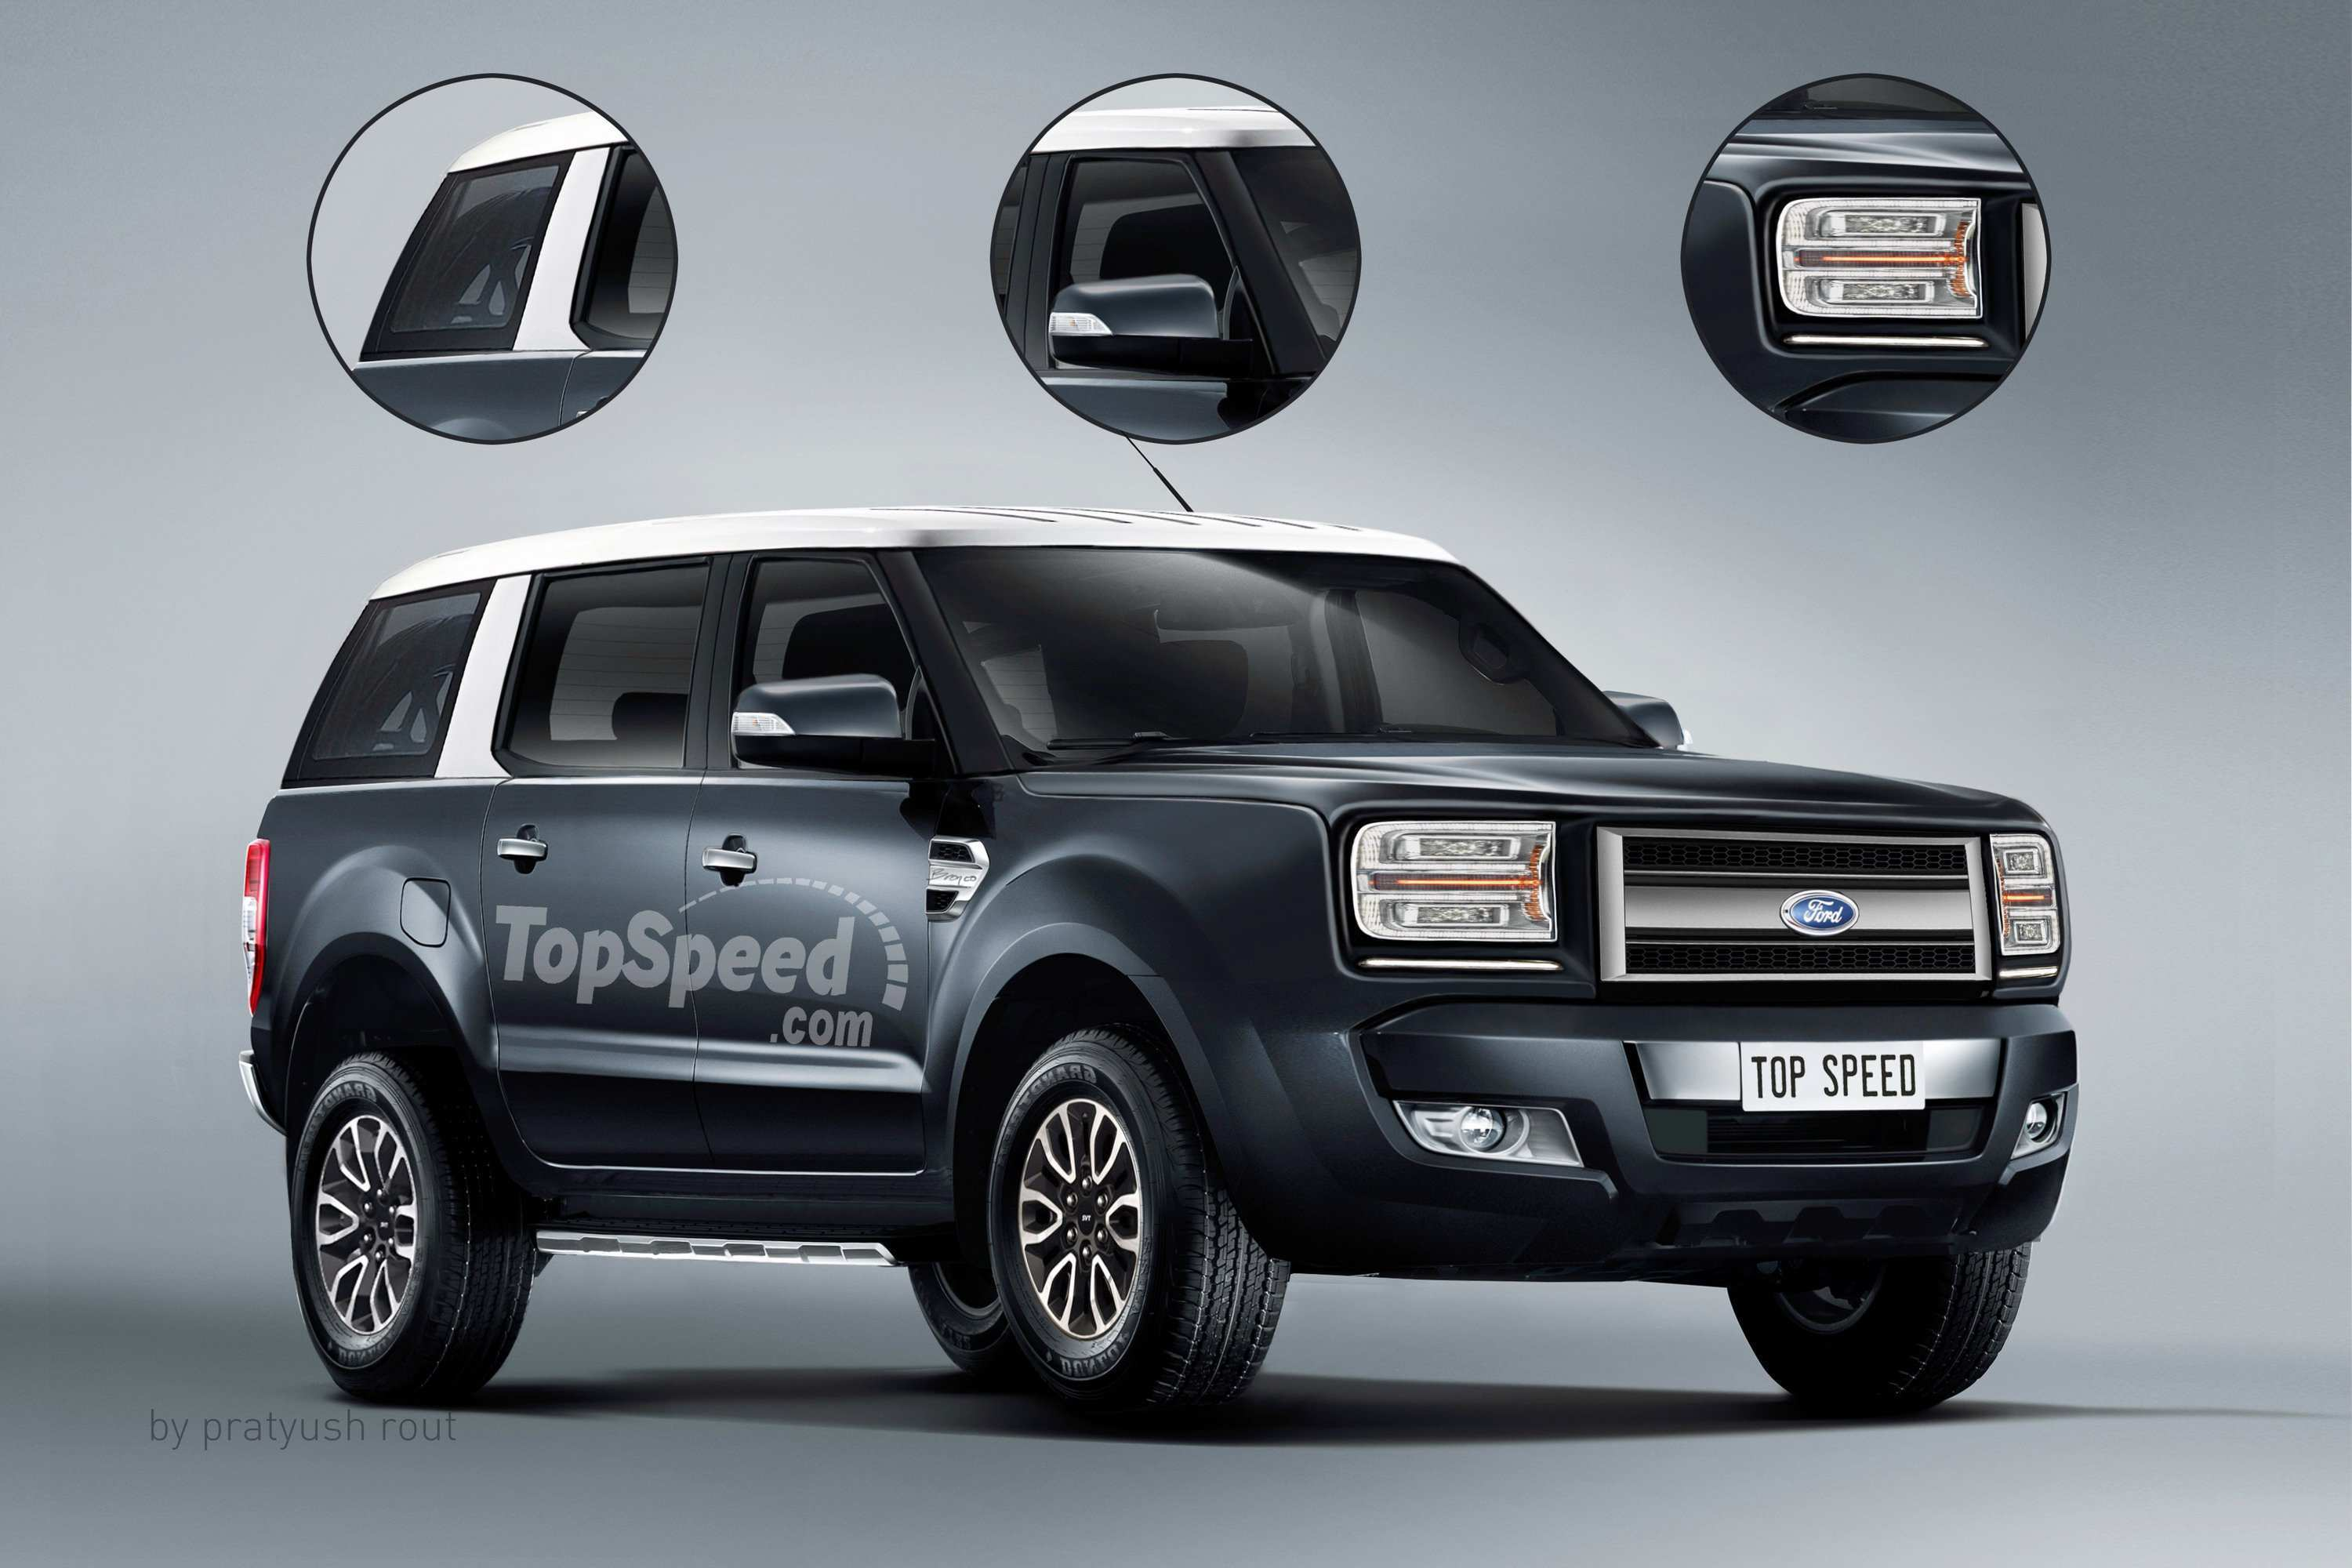 48 A 2020 Ford Bronco Design Pricing